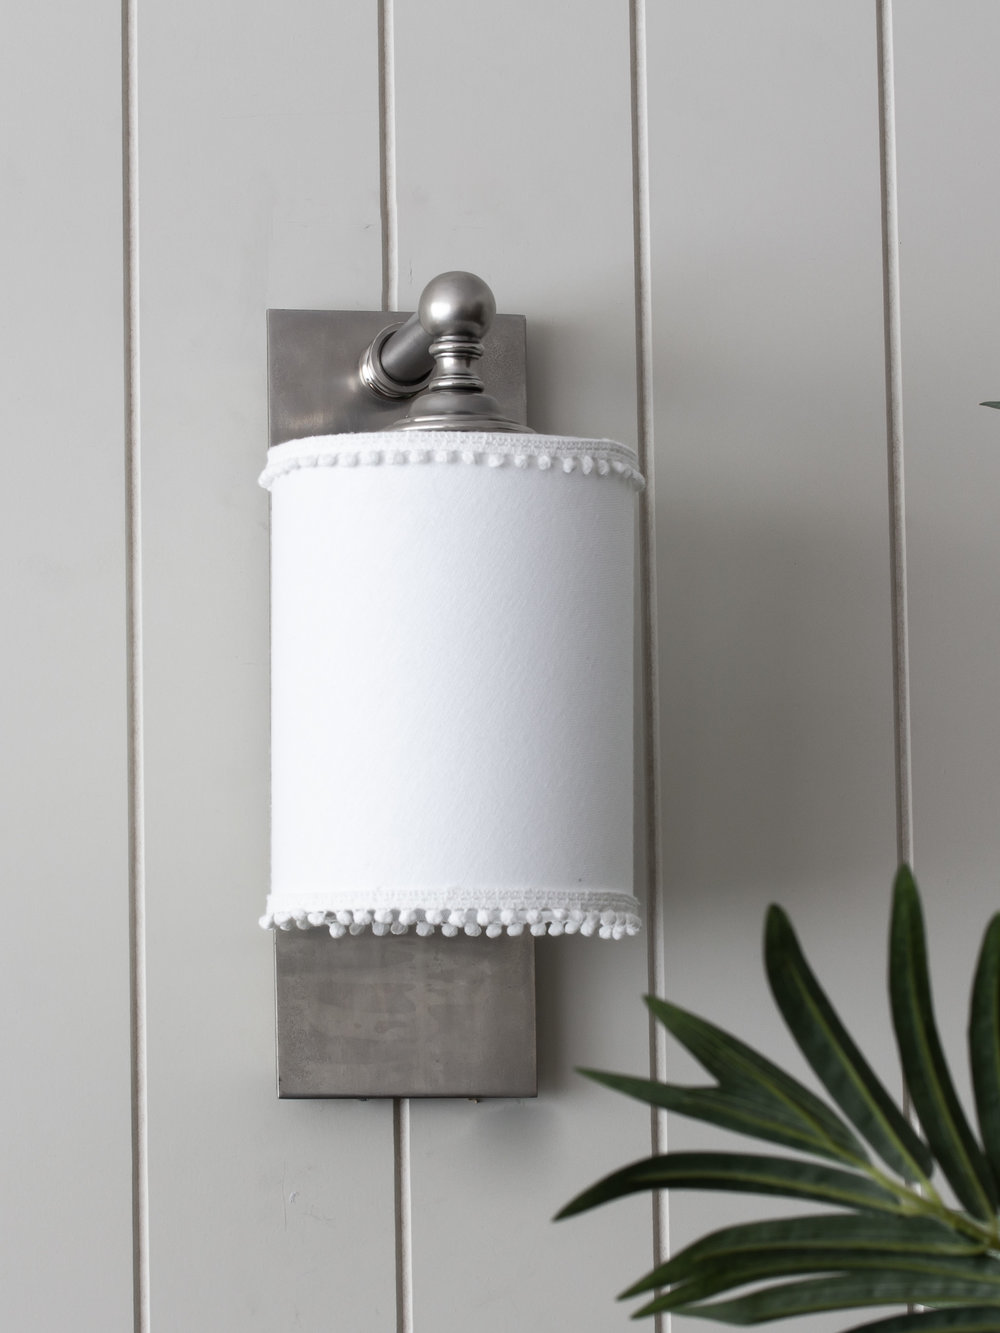 The Ripple Wall Sconce